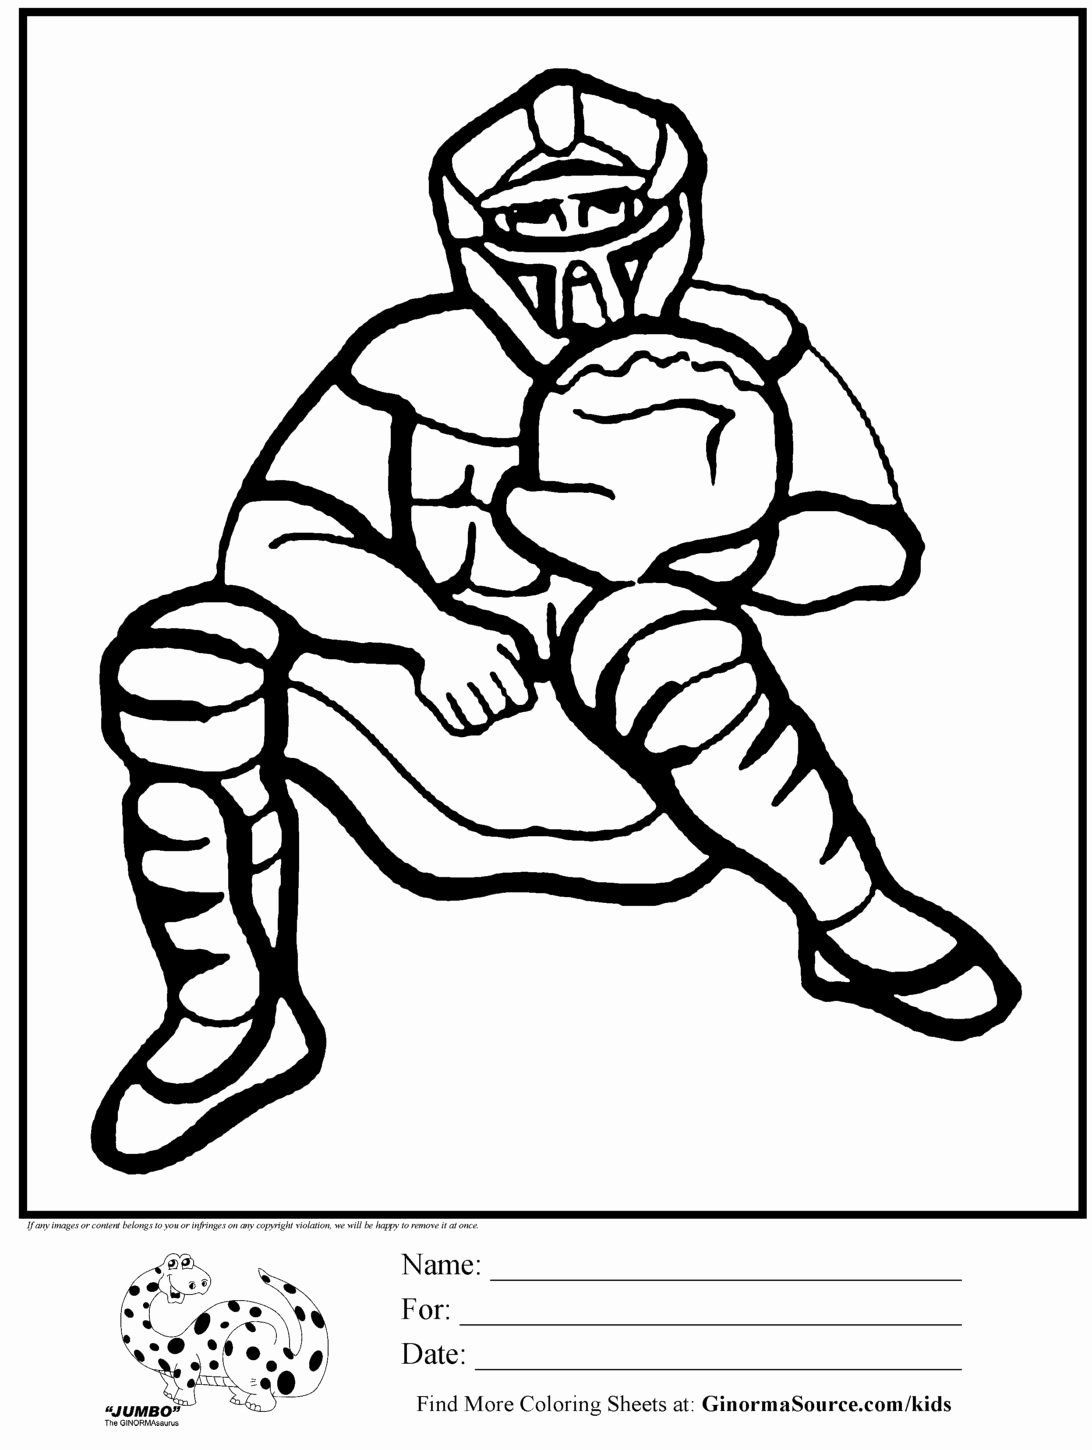 Baseball Glove Coloring Page Fresh Top 23 Splendid Coloring Pages Baseball Catcher Elmo In 2021 Baseball Coloring Pages Coloring Pages For Boys Football Coloring Pages